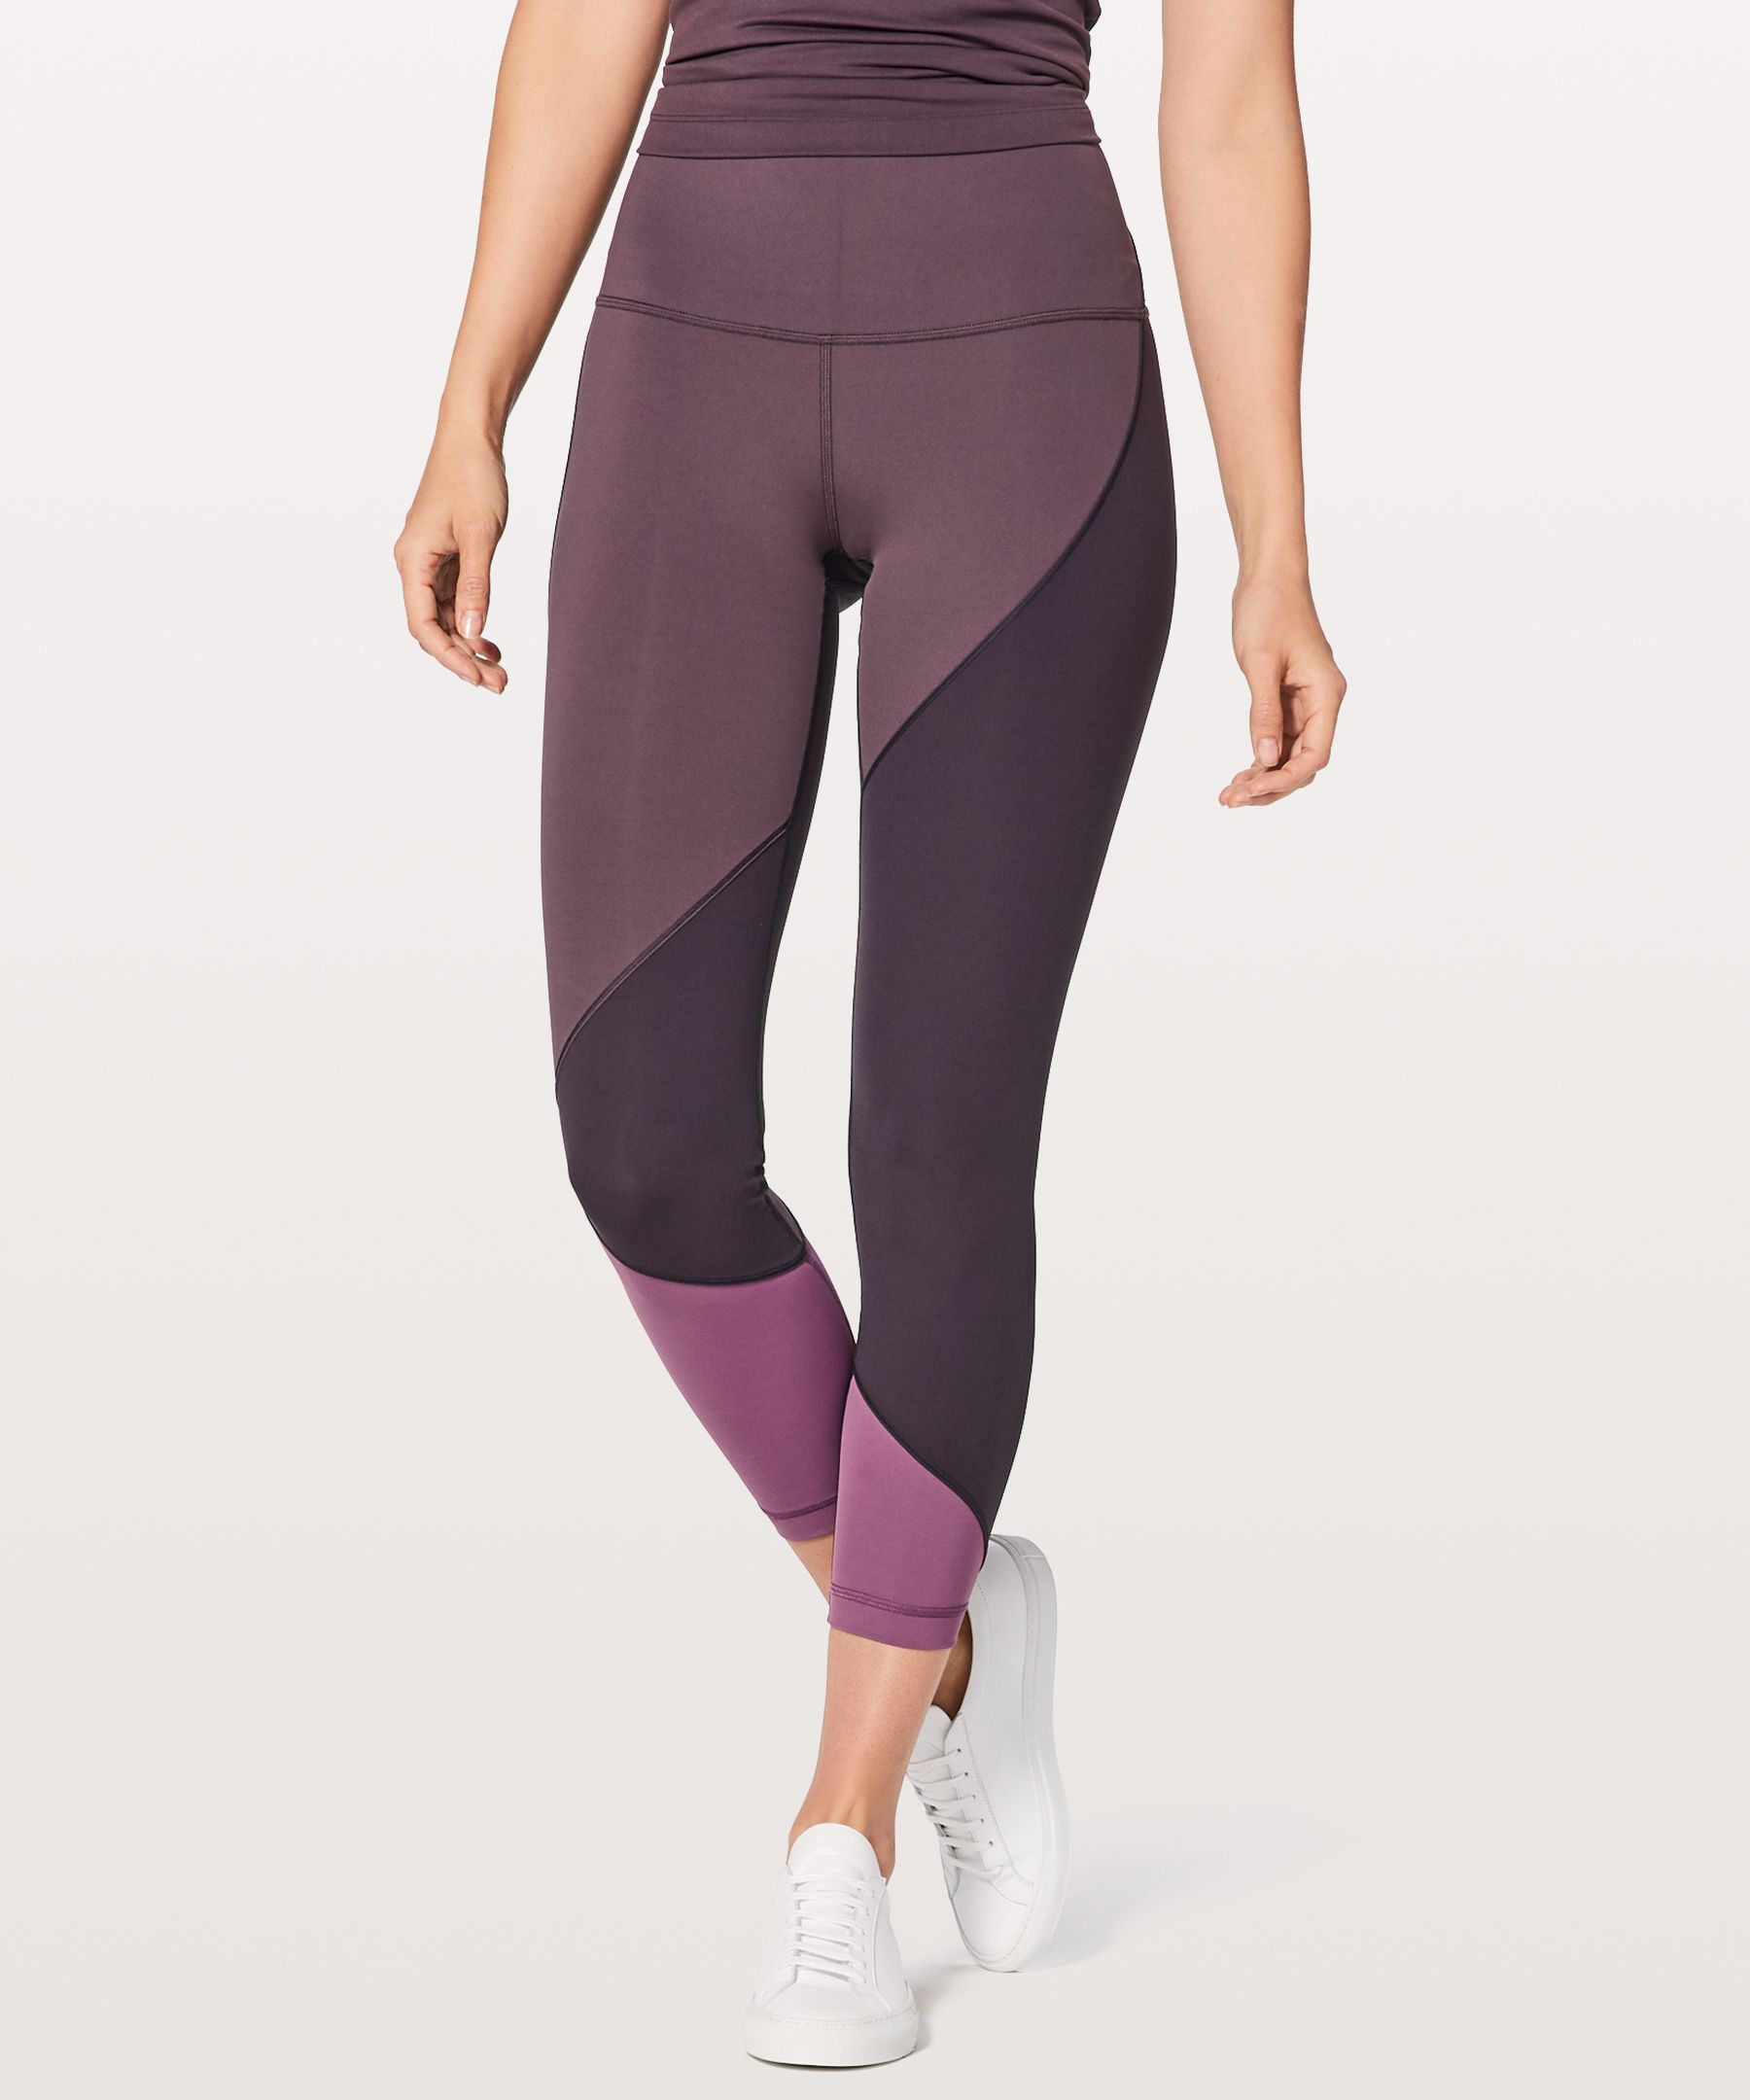 2642961e5a7f96 Wunder Under Hi-Rise 7/8 Tight *special edition   Women's Pants   lululemon  athletica